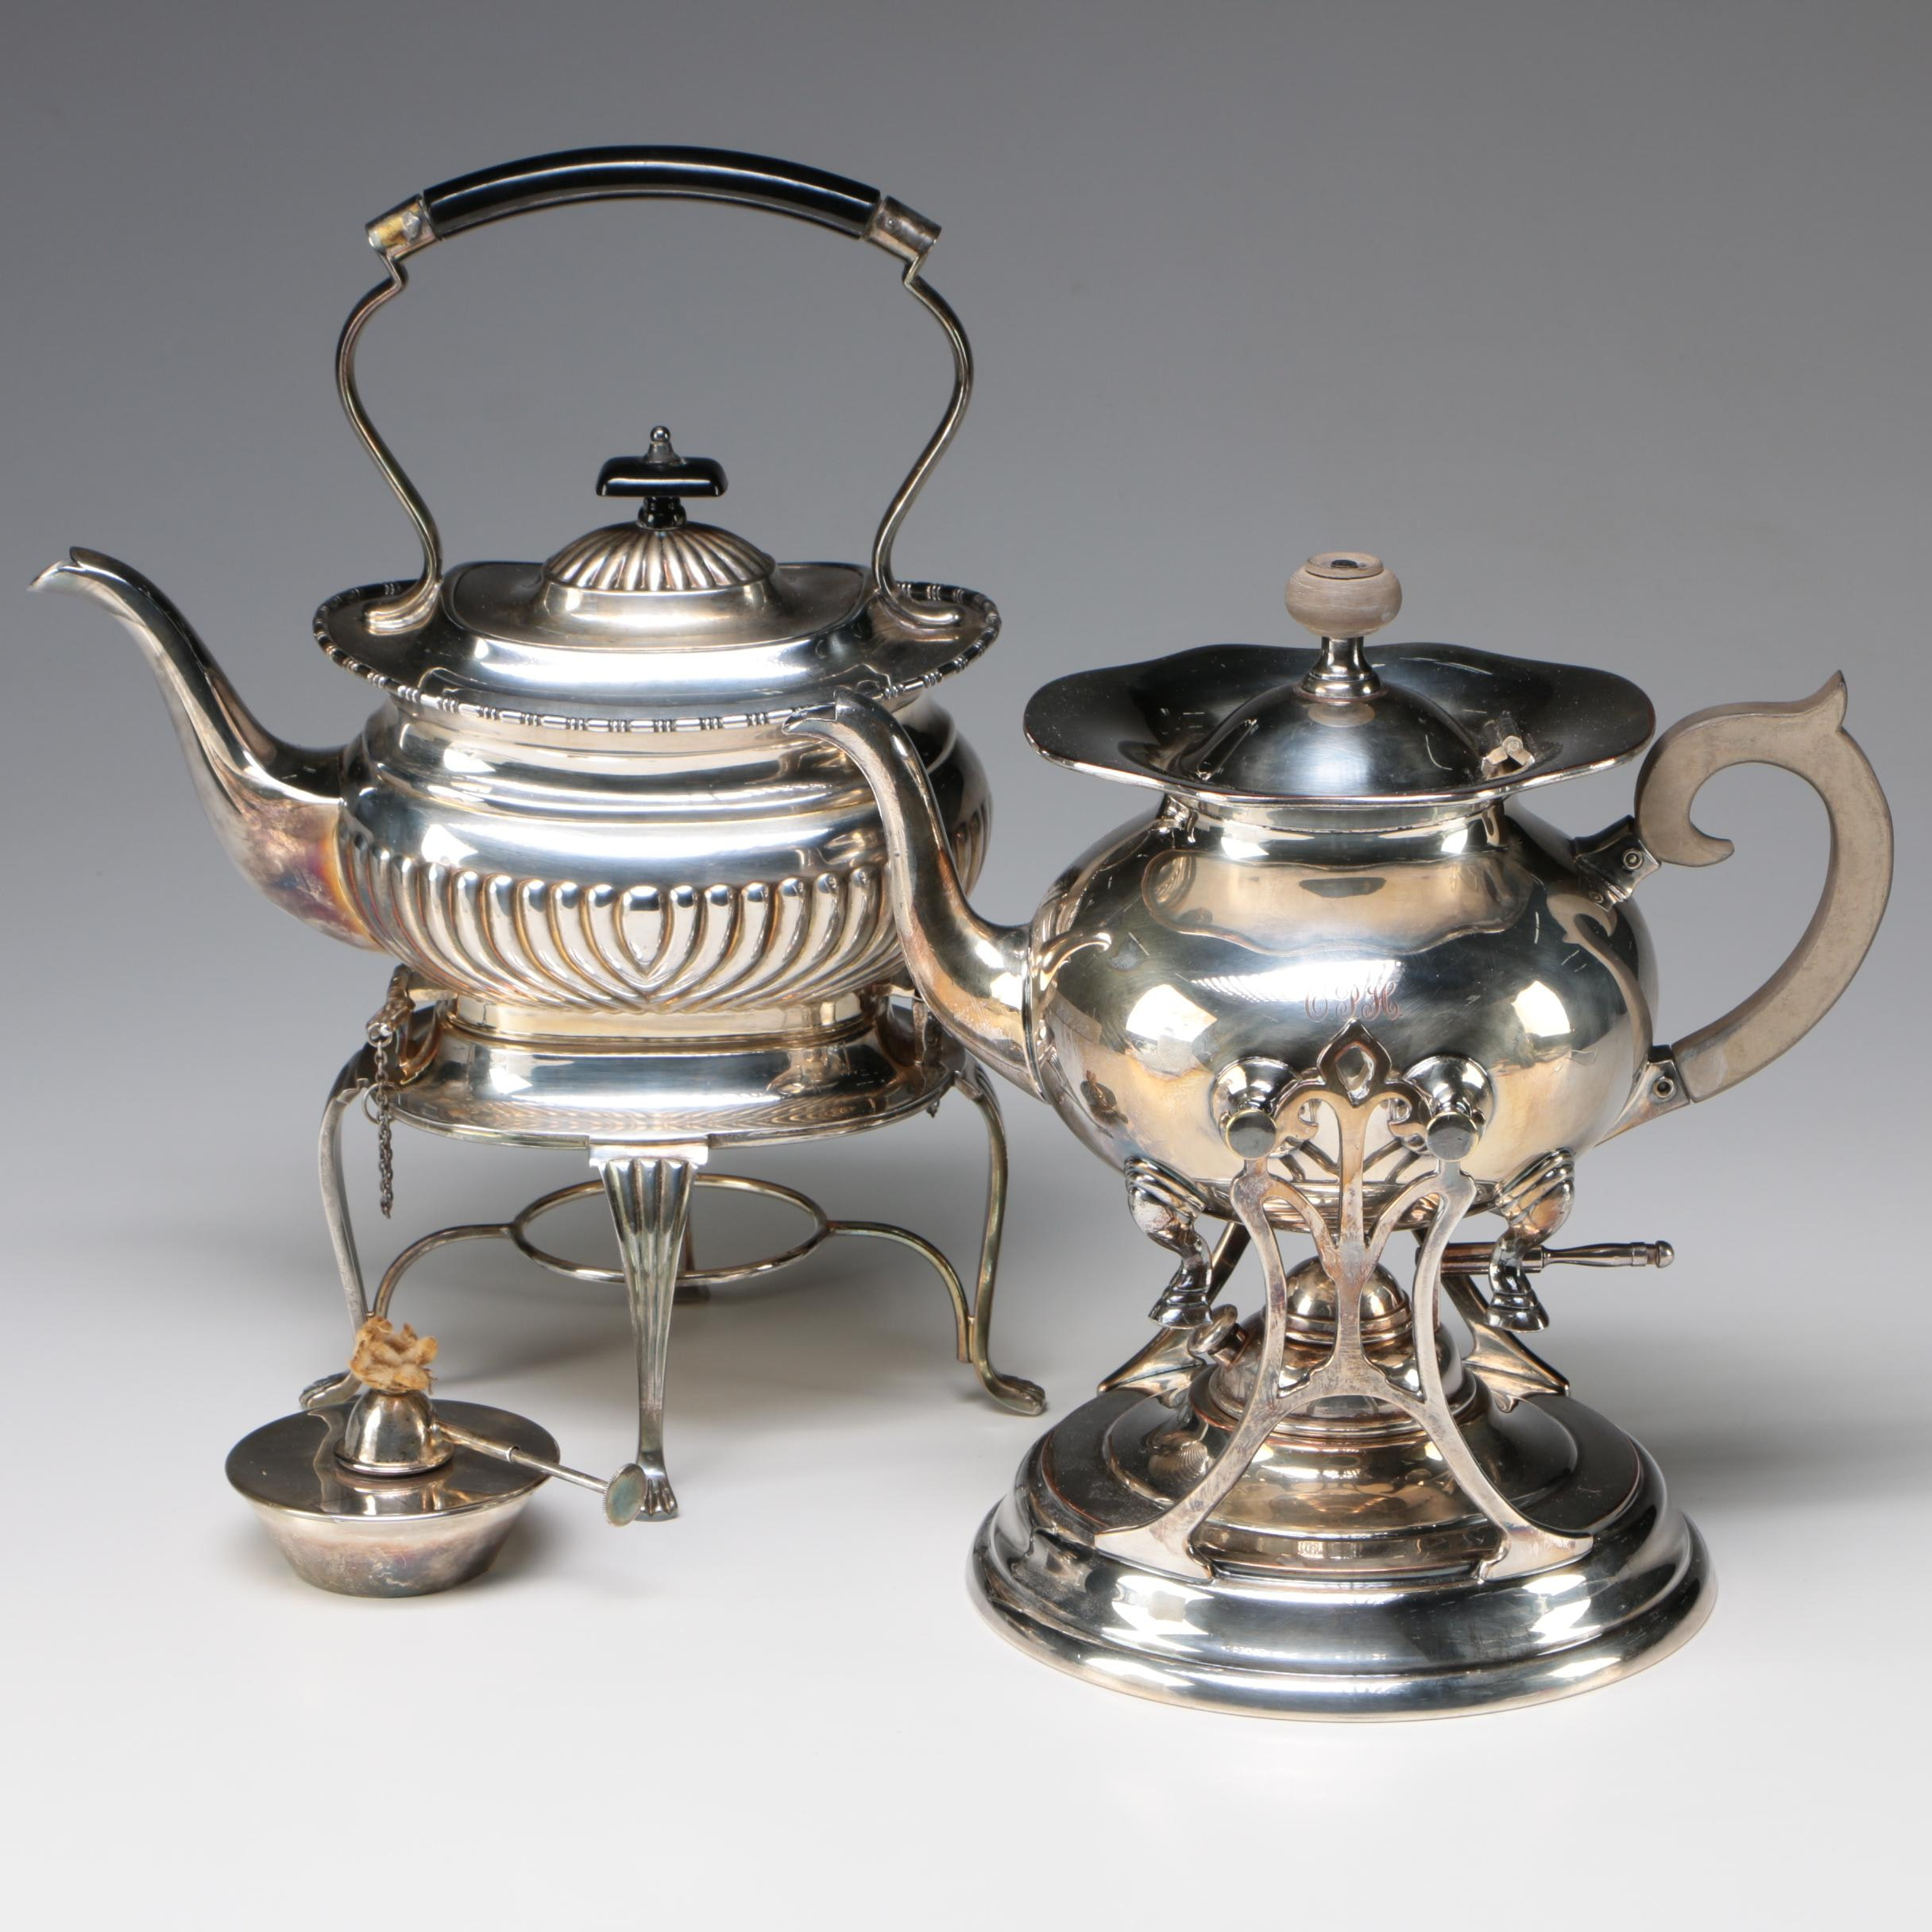 Silver-Plate Teapots on Warming Stands